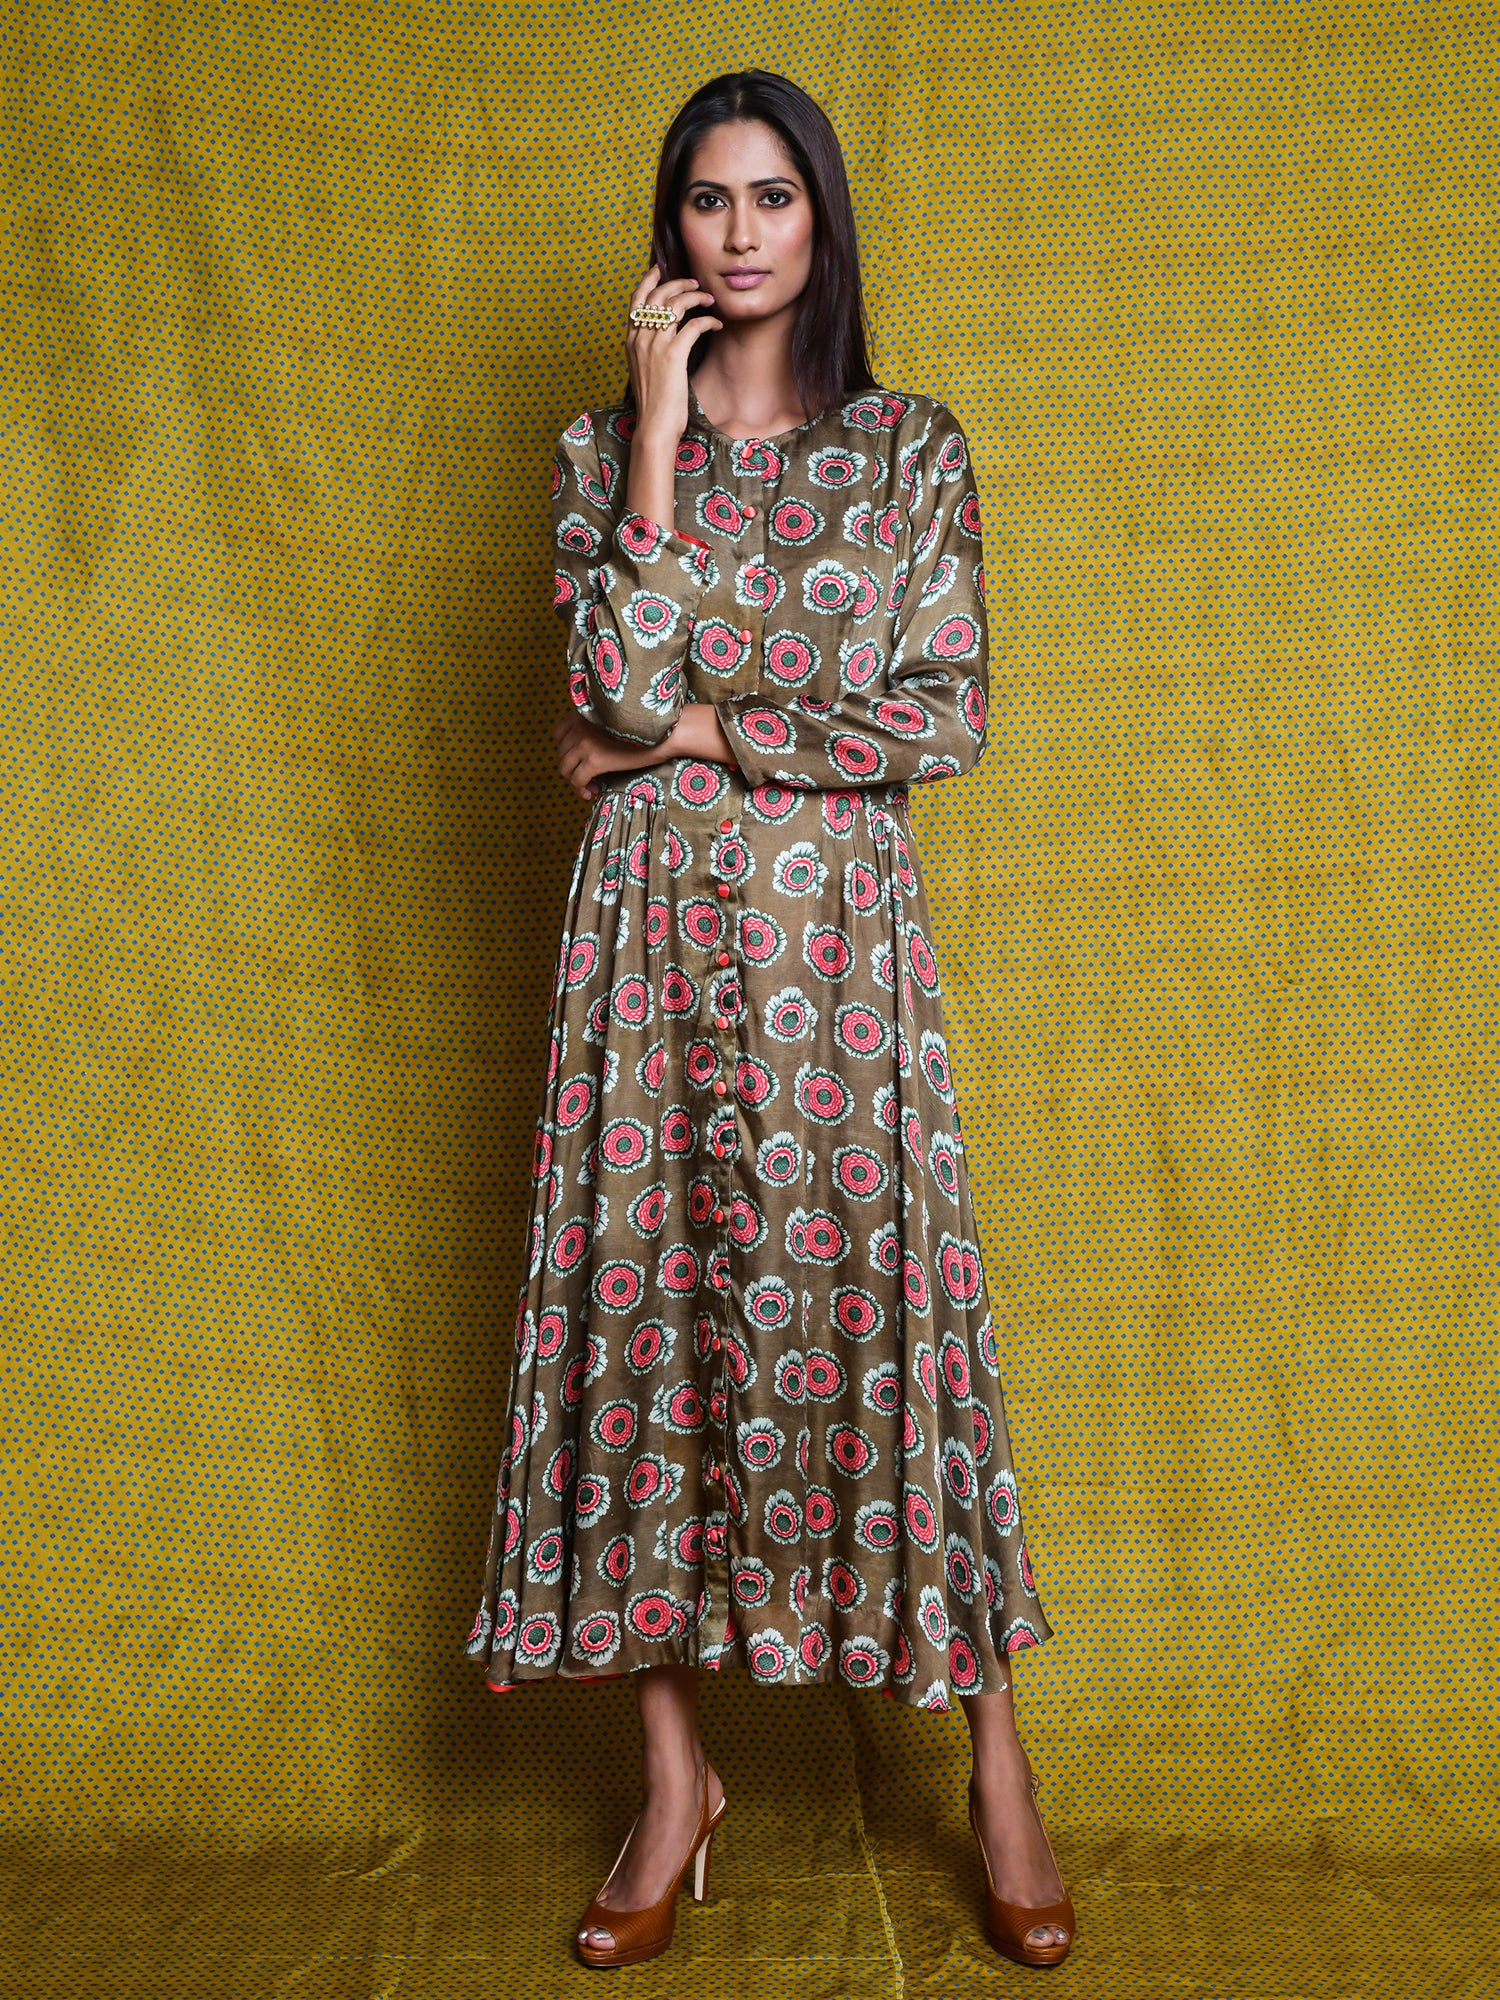 vintagegarden, dress, tunic, kurta, indianapparel, indianfashion, silk, satindresses, printeddress, swativijaivargie